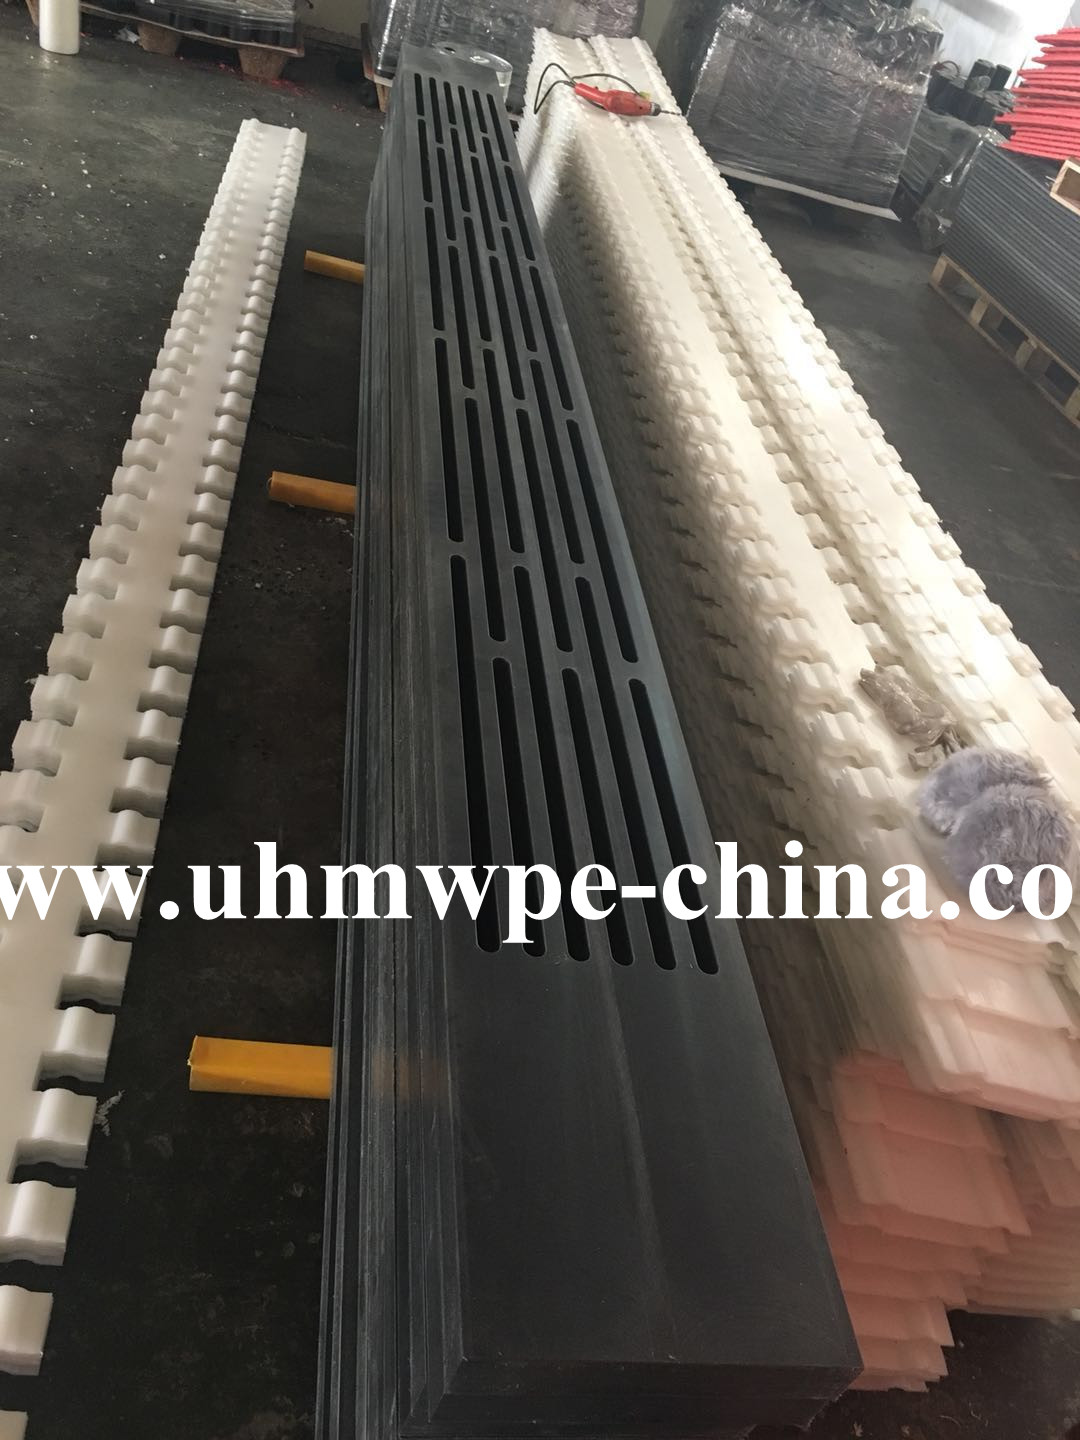 Stong Hardness Ceramic with UHMWPE Suction Box Cover